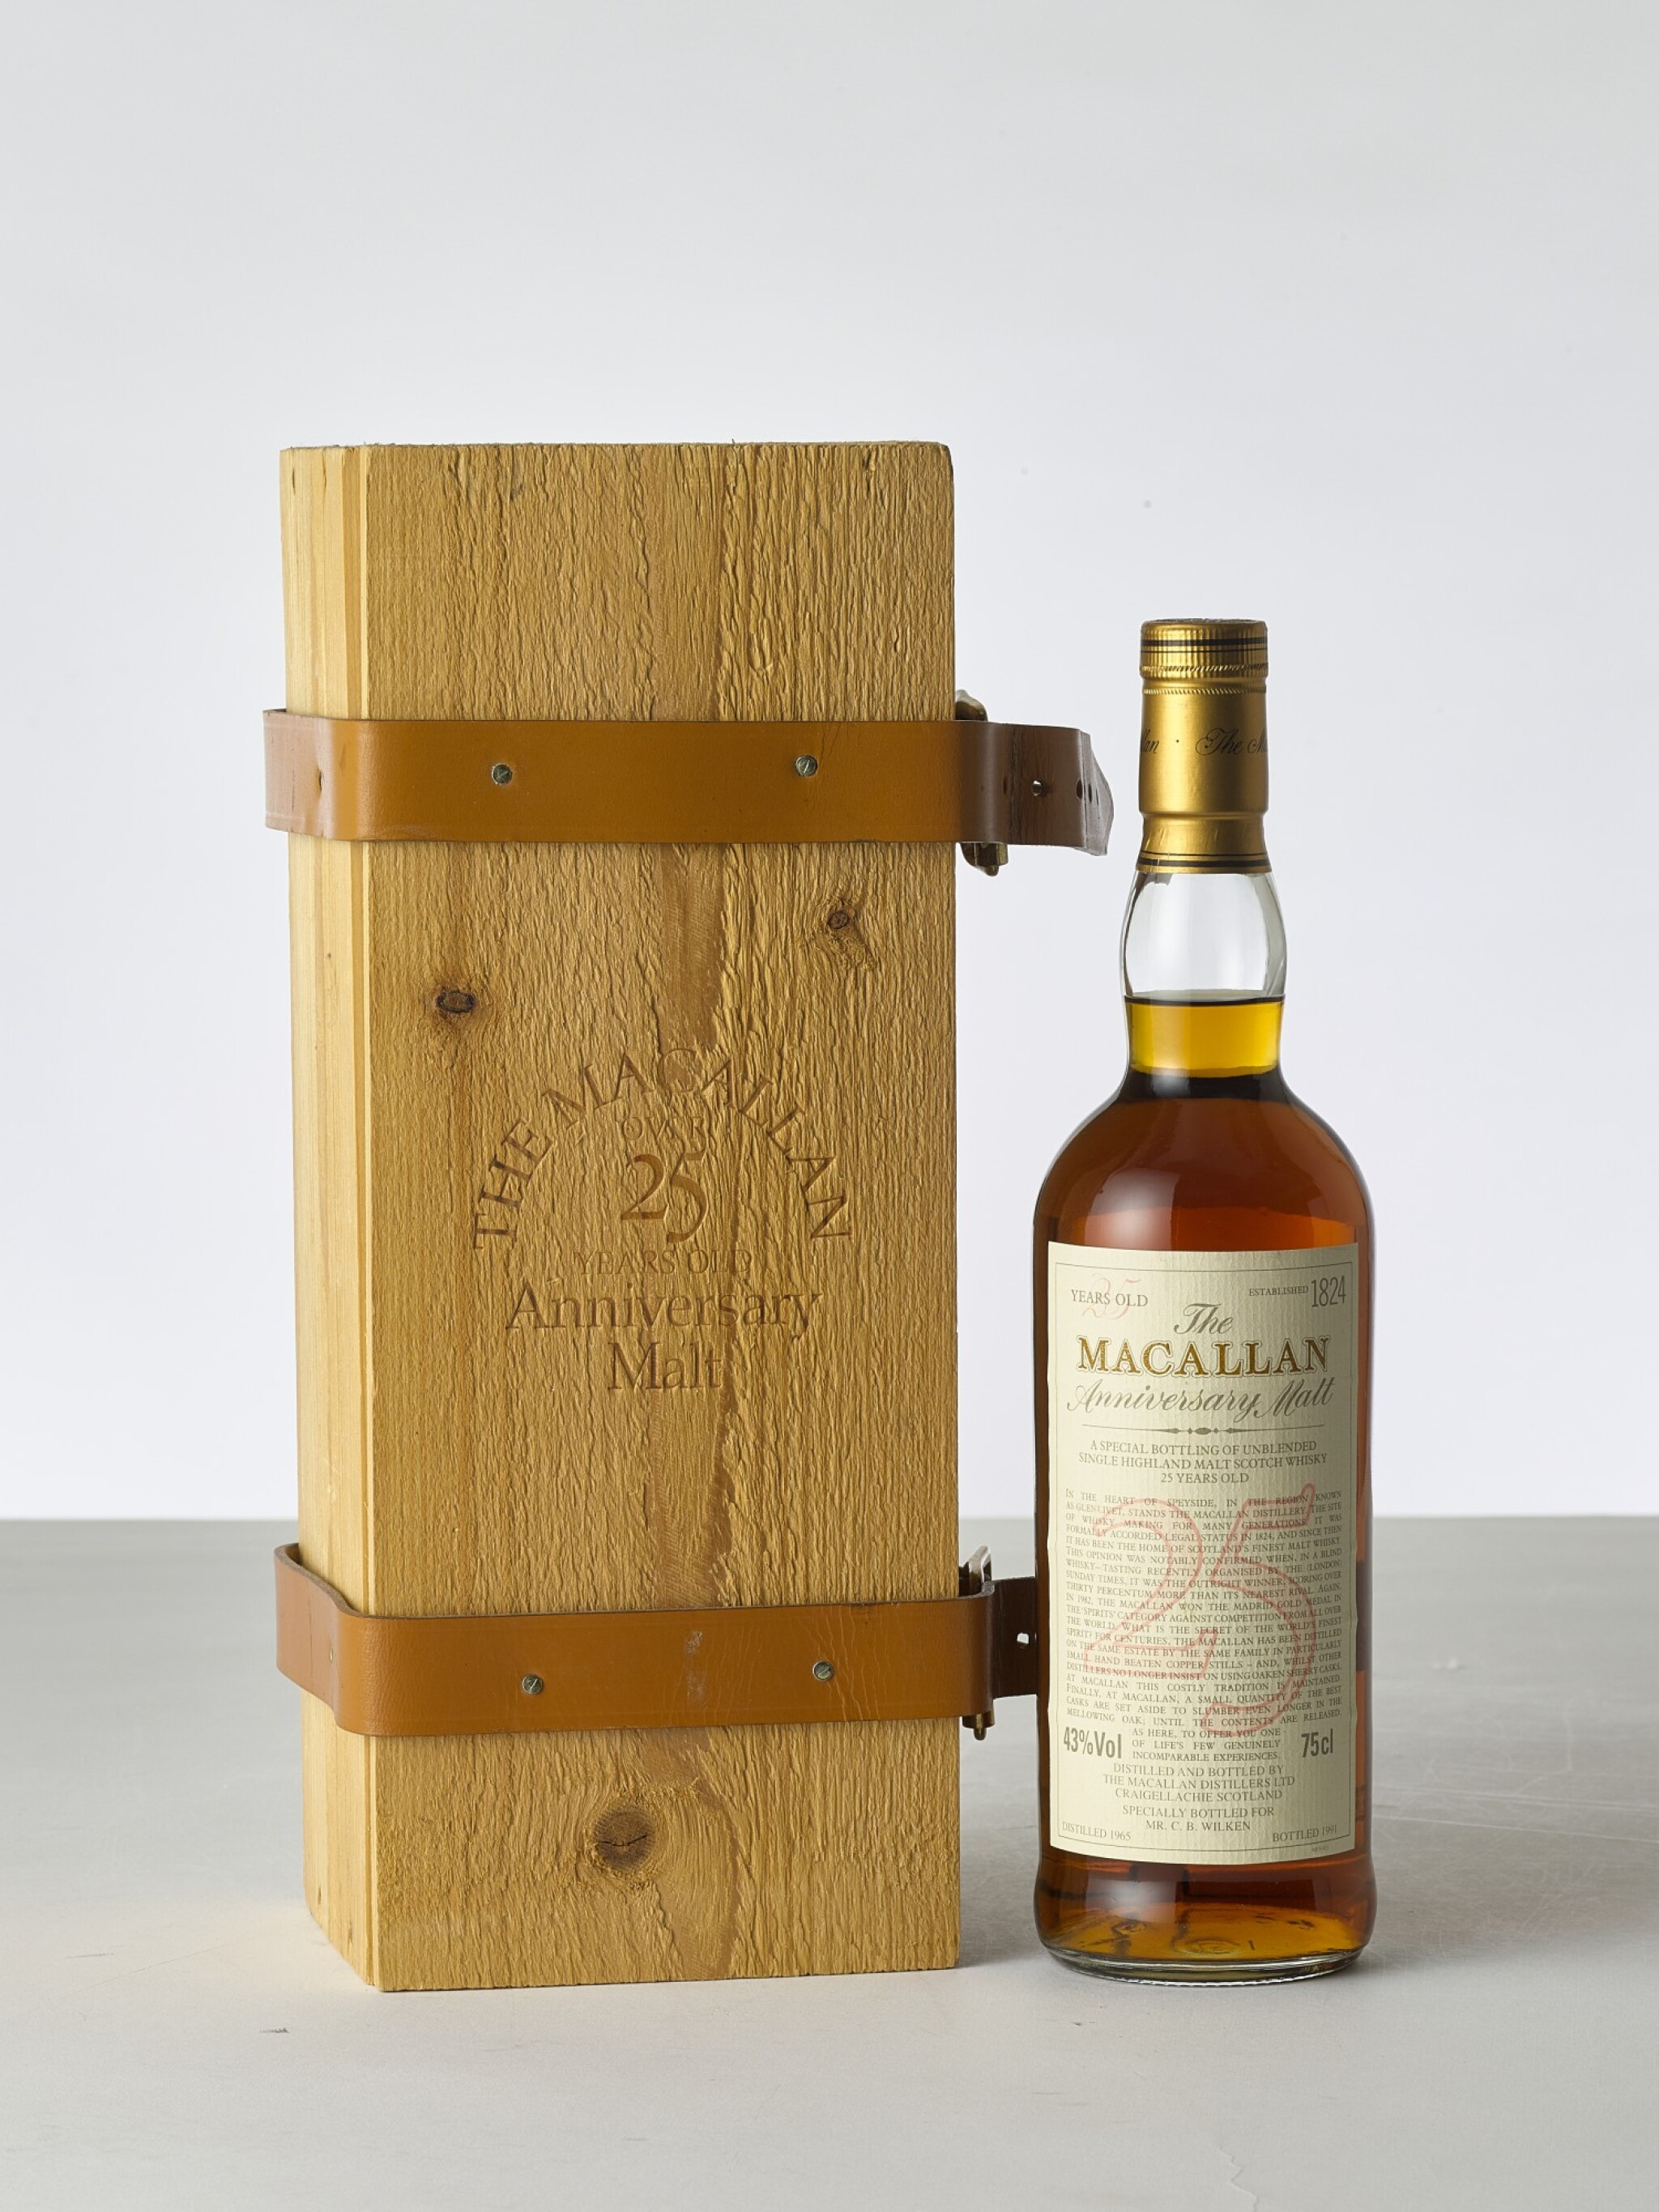 View 1 of Lot 2011. The Macallan 25 Year Old Anniversary Malt 43.0 abv 1965 (1 BT).